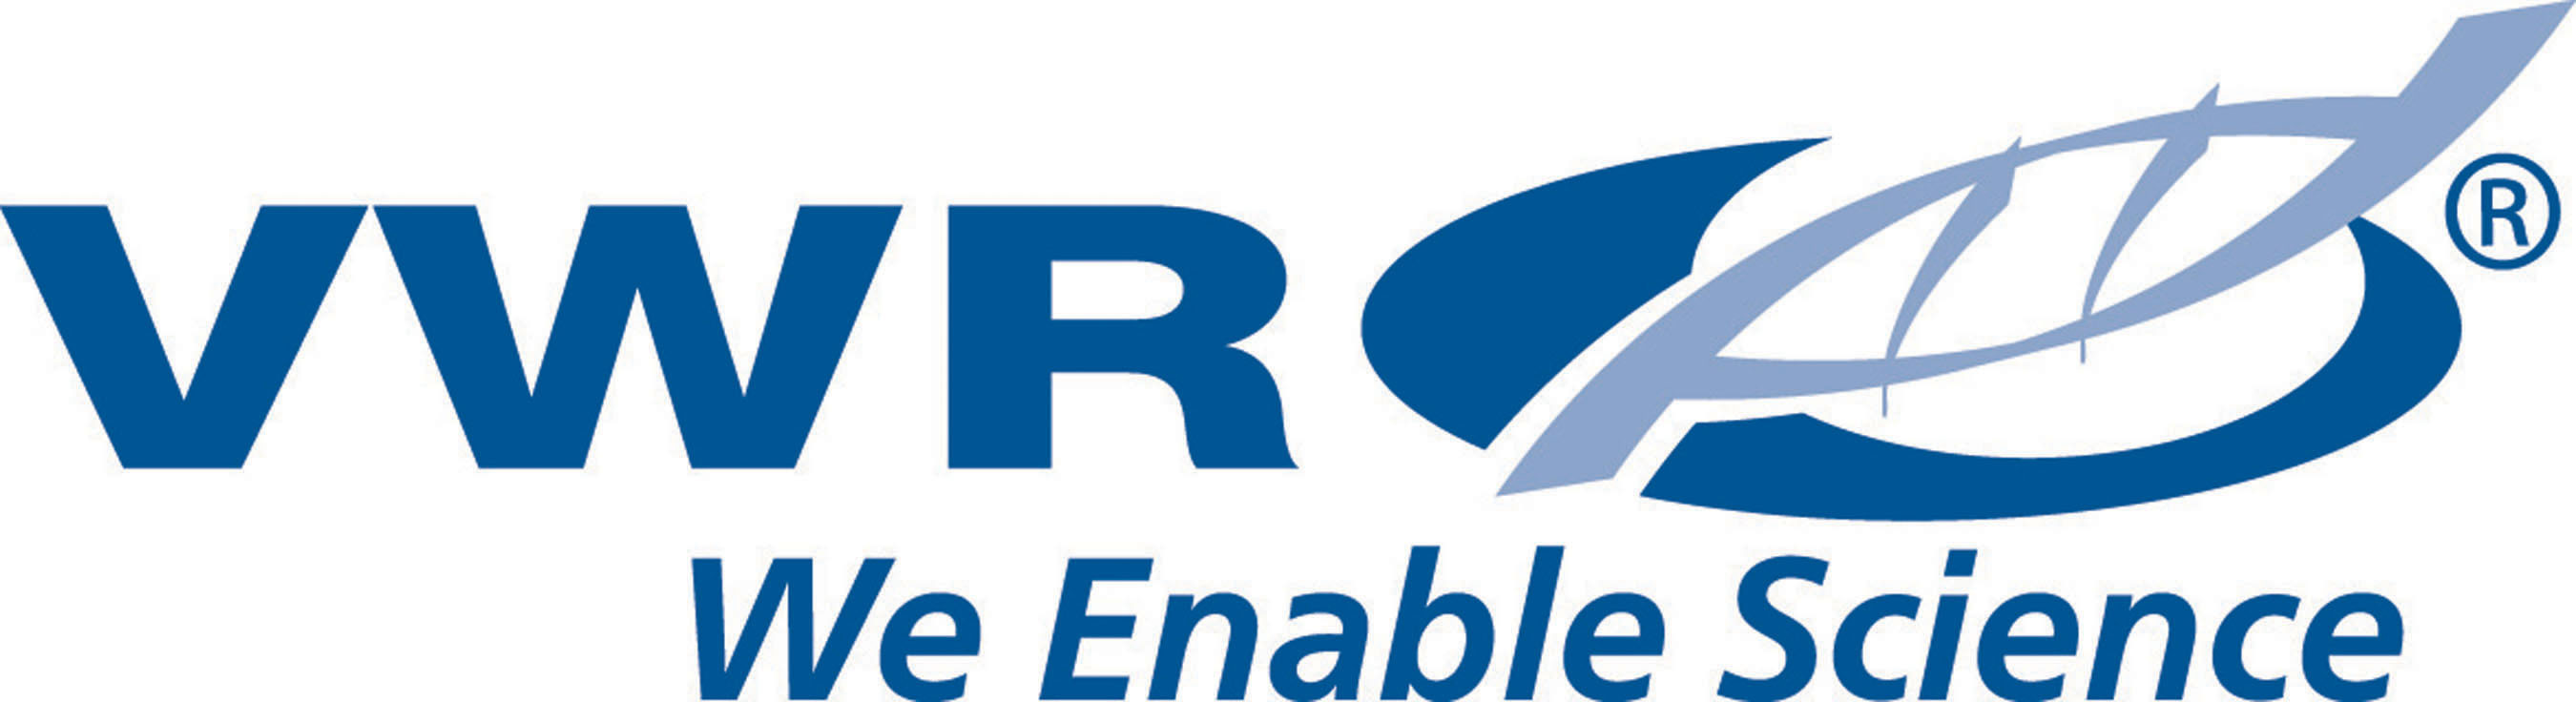 VWR Acquires Hichrom Limited